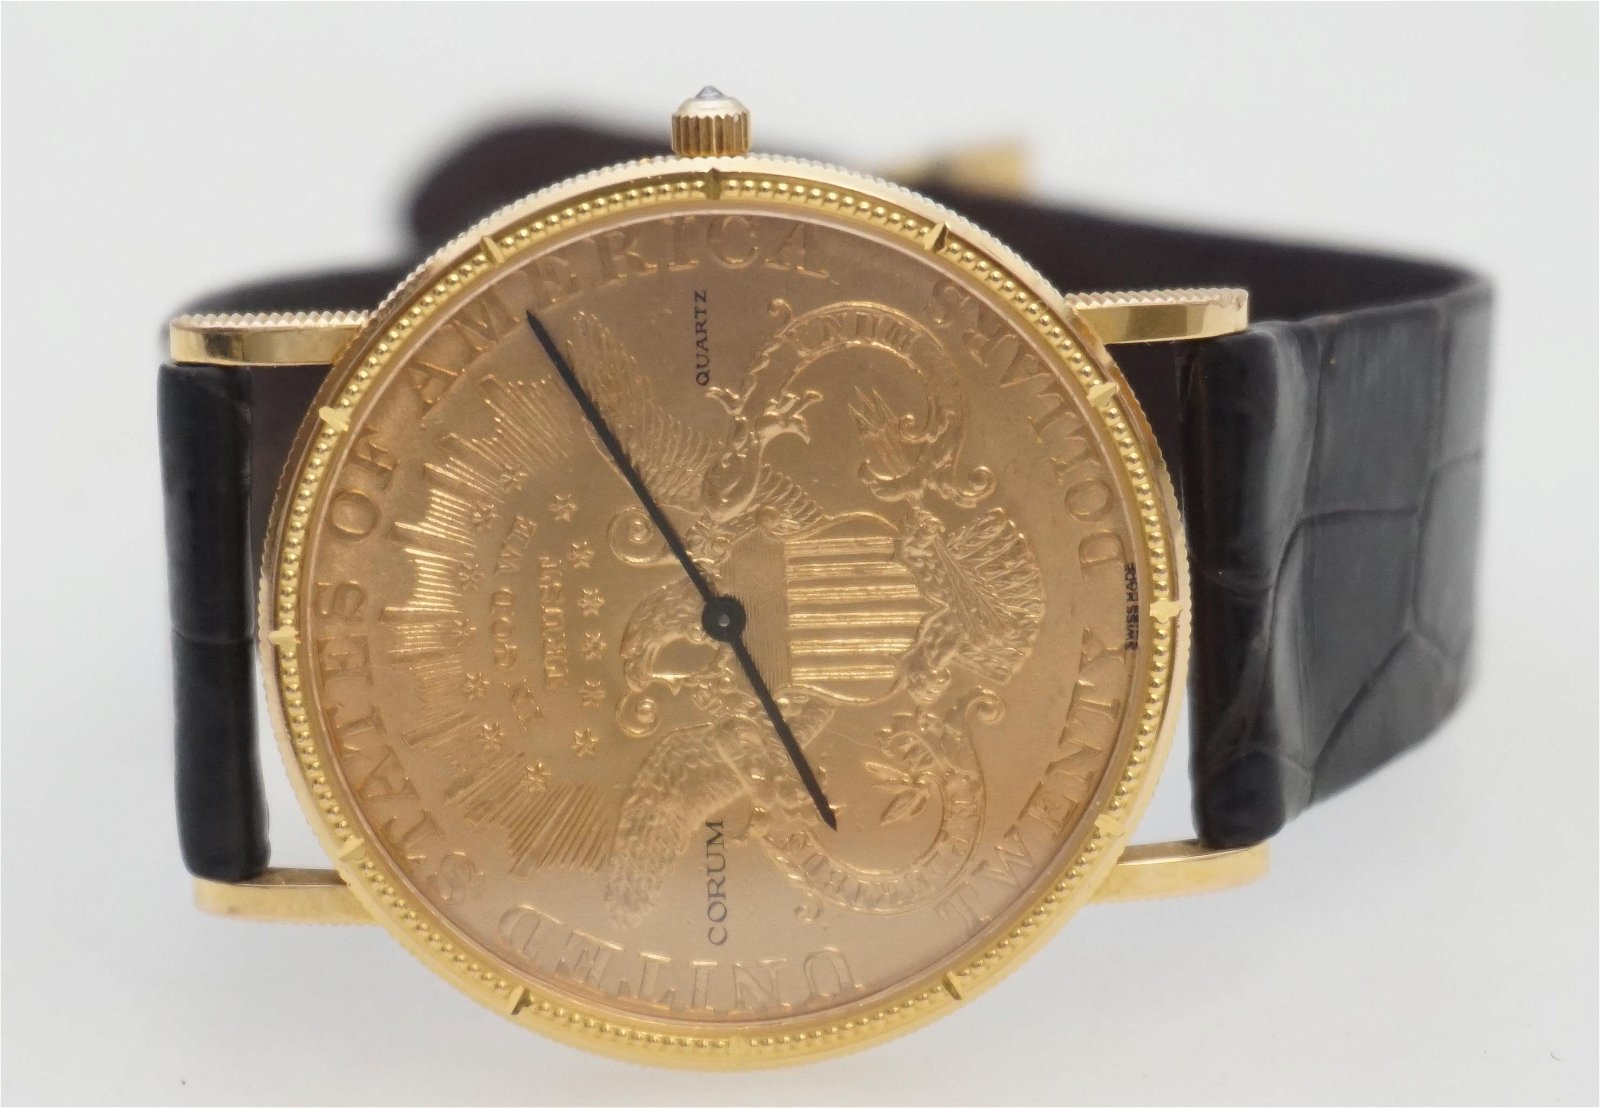 GENTLEMAN'S CORUM $20 LIBERTY COIN